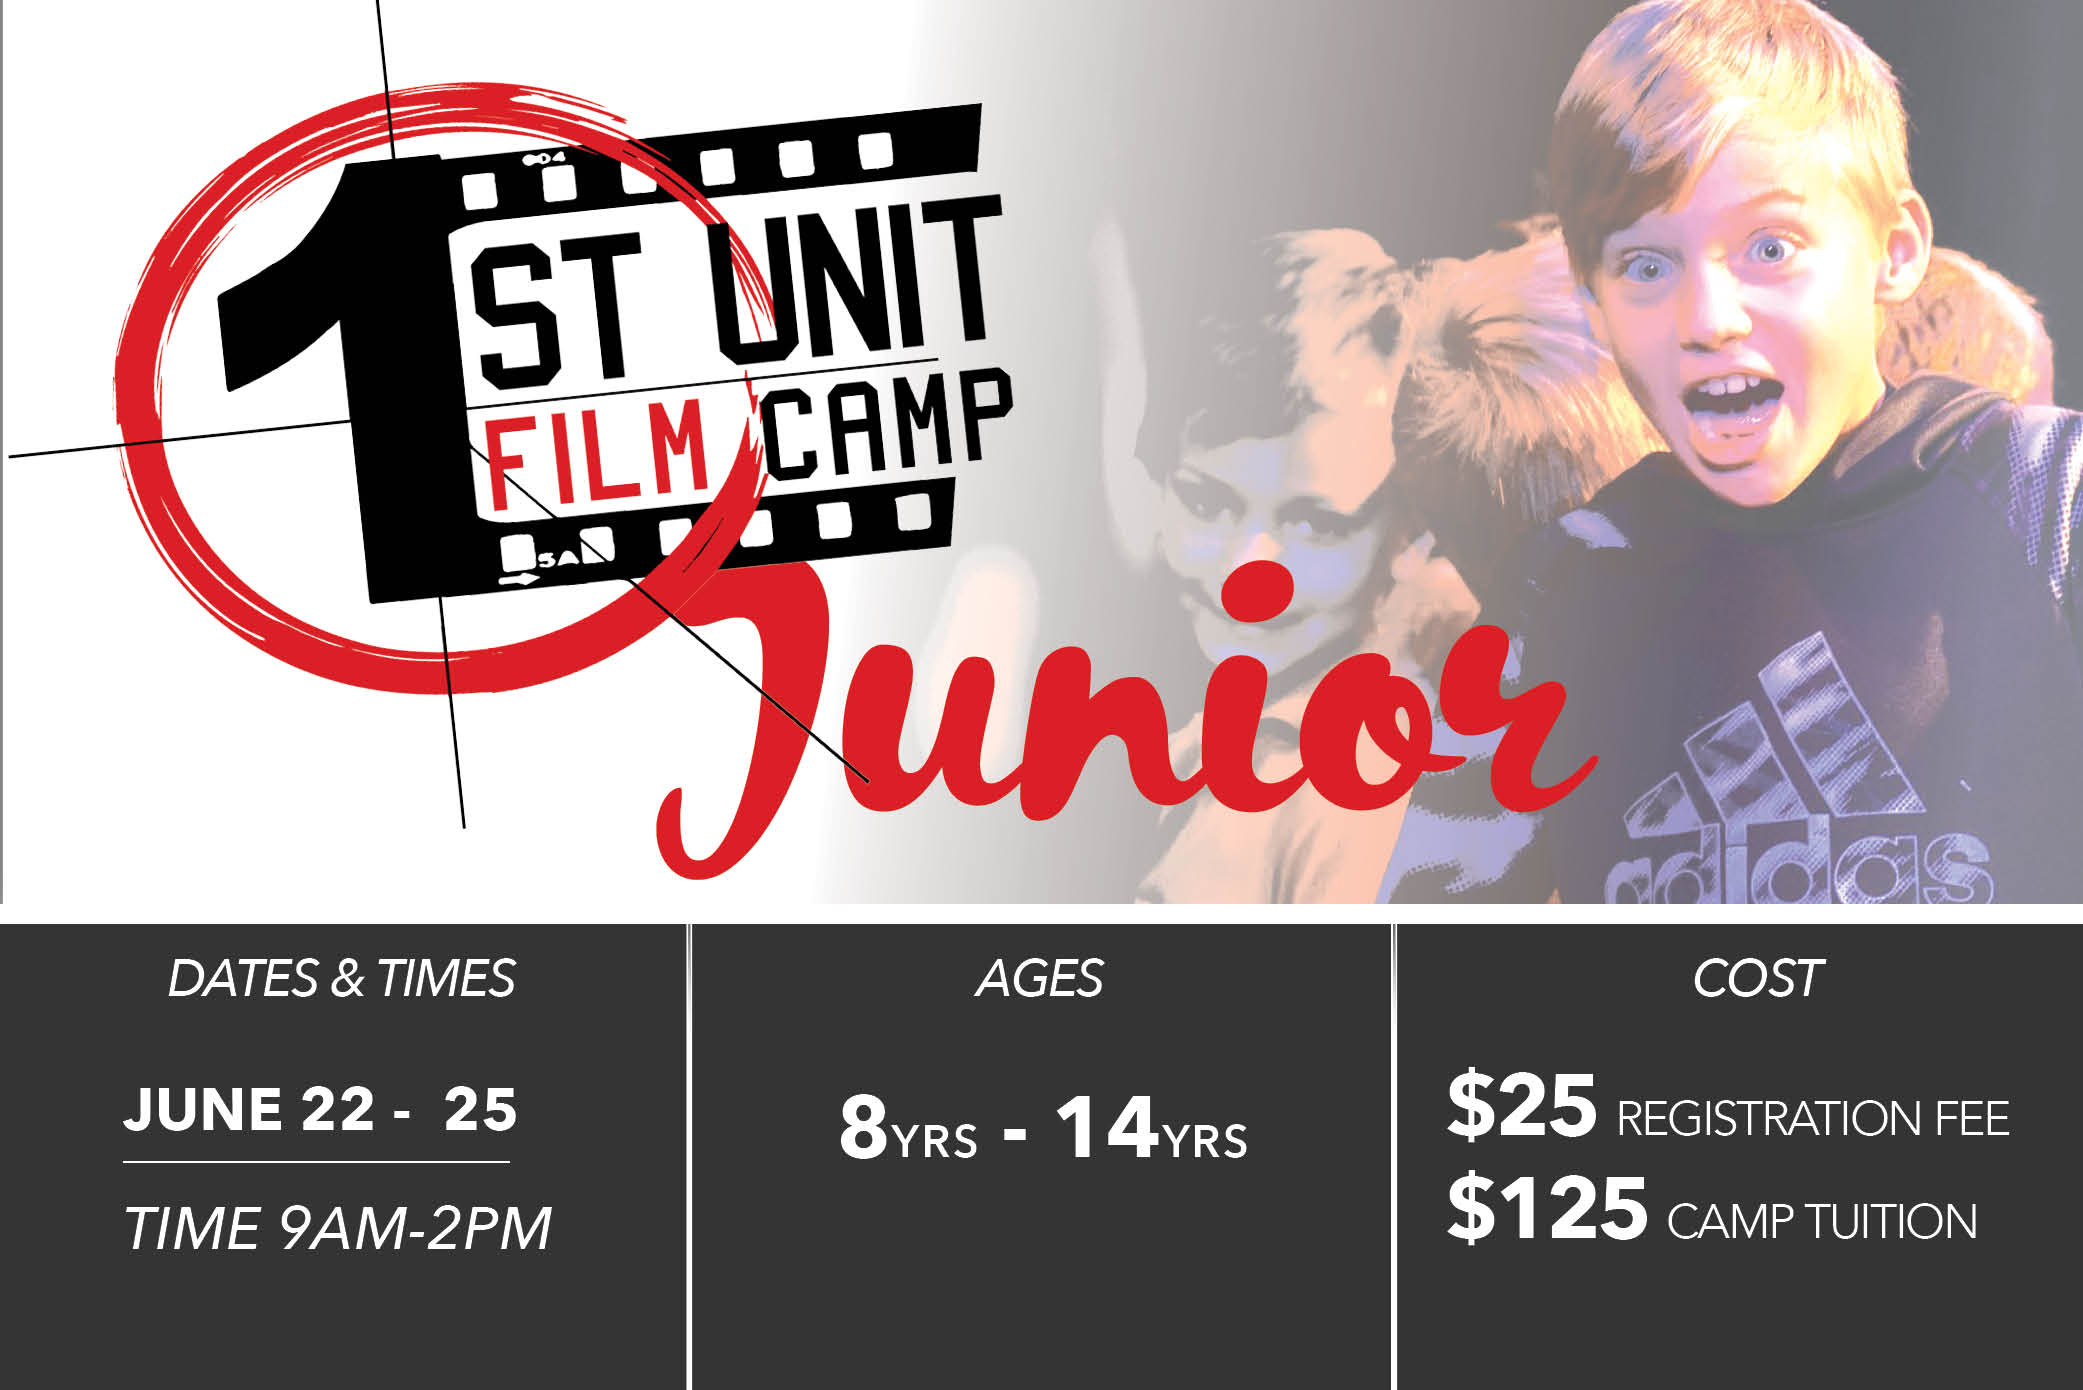 Venture Films' First Unit Film Camp Photo